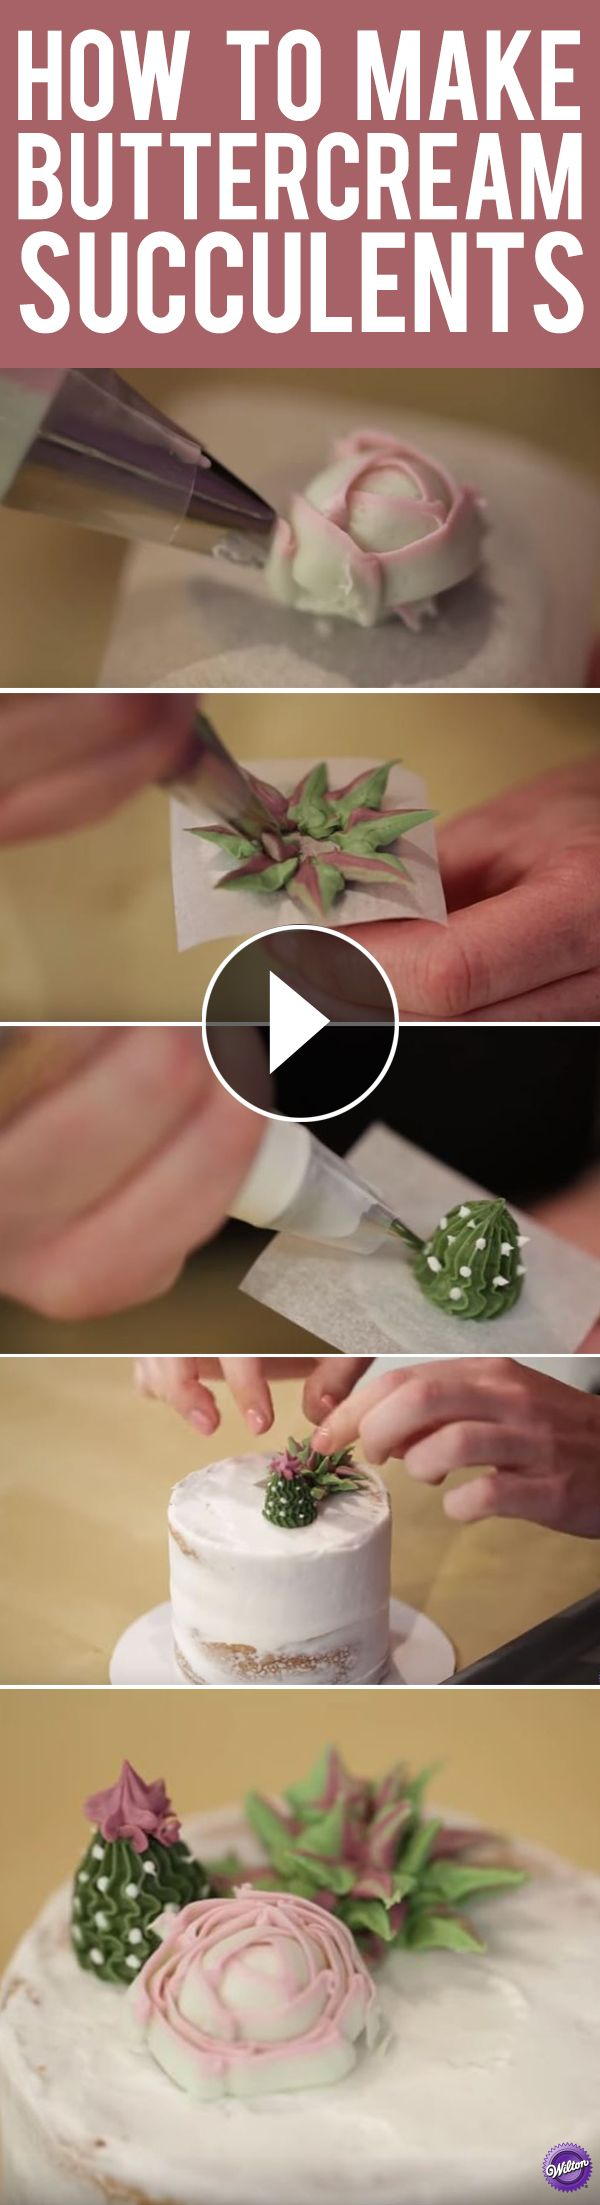 How to Make Buttercream Succulents - Learn how-to make 3 types of succulents in buttercream icing. Great for tea parties, birthdays, bridal showers and weddings, these stunning mini cakes are a great way to showcase your decorating skills. Mix and match succulent styles and colors to create the edible garden of your dreams!